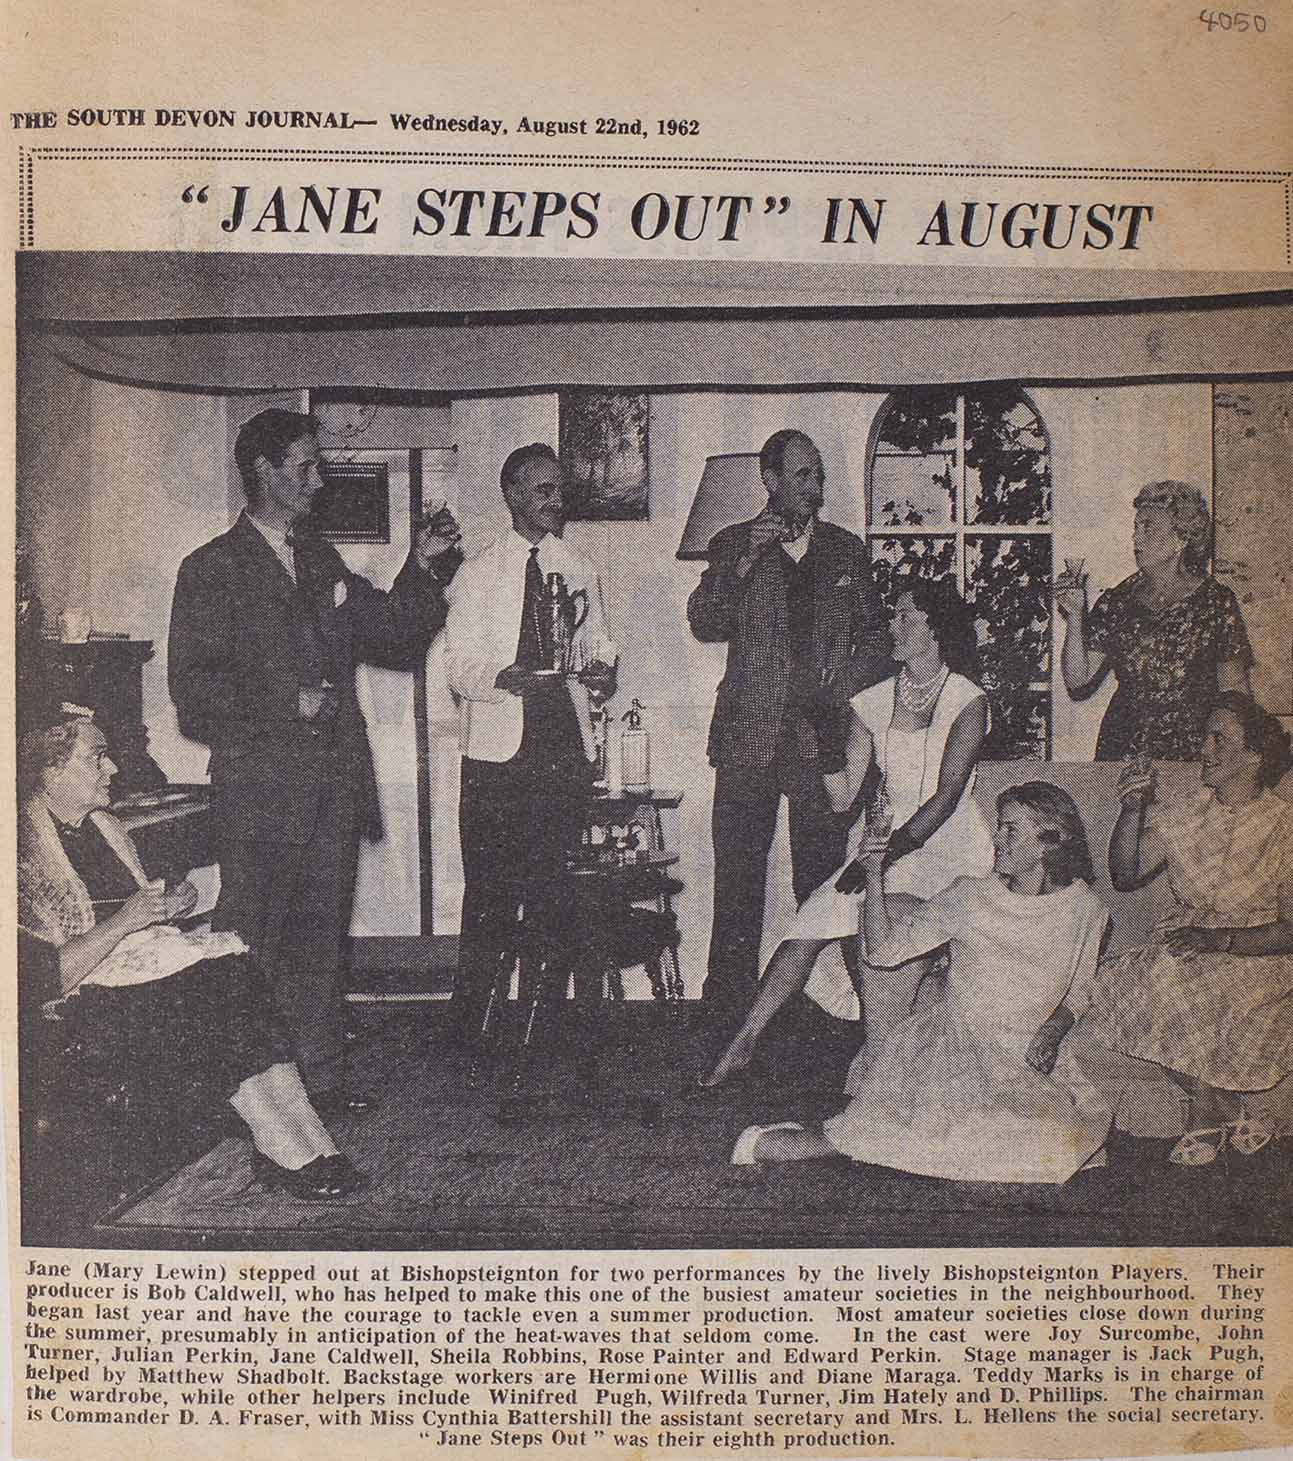 Newspaper clipping including article and picture from The South Devon Journal highlighting the cast members from the play 'Jane Steps Out'